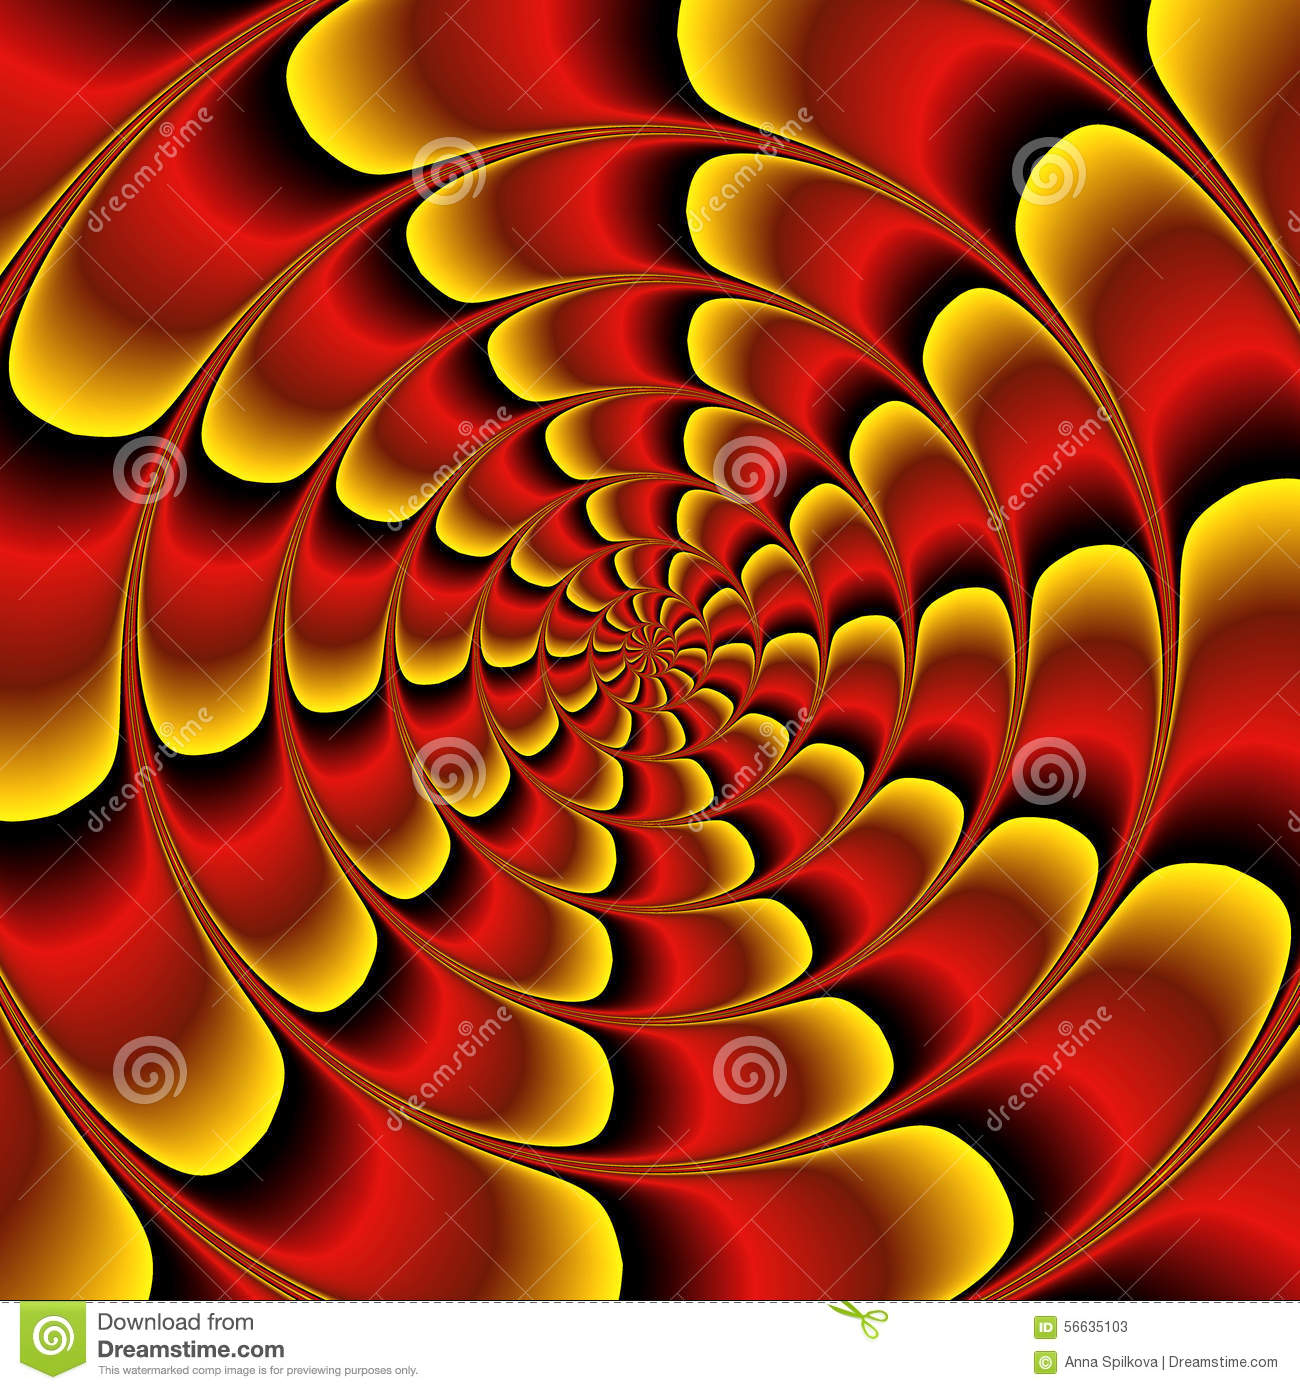 abstract red black and gold background with rippling